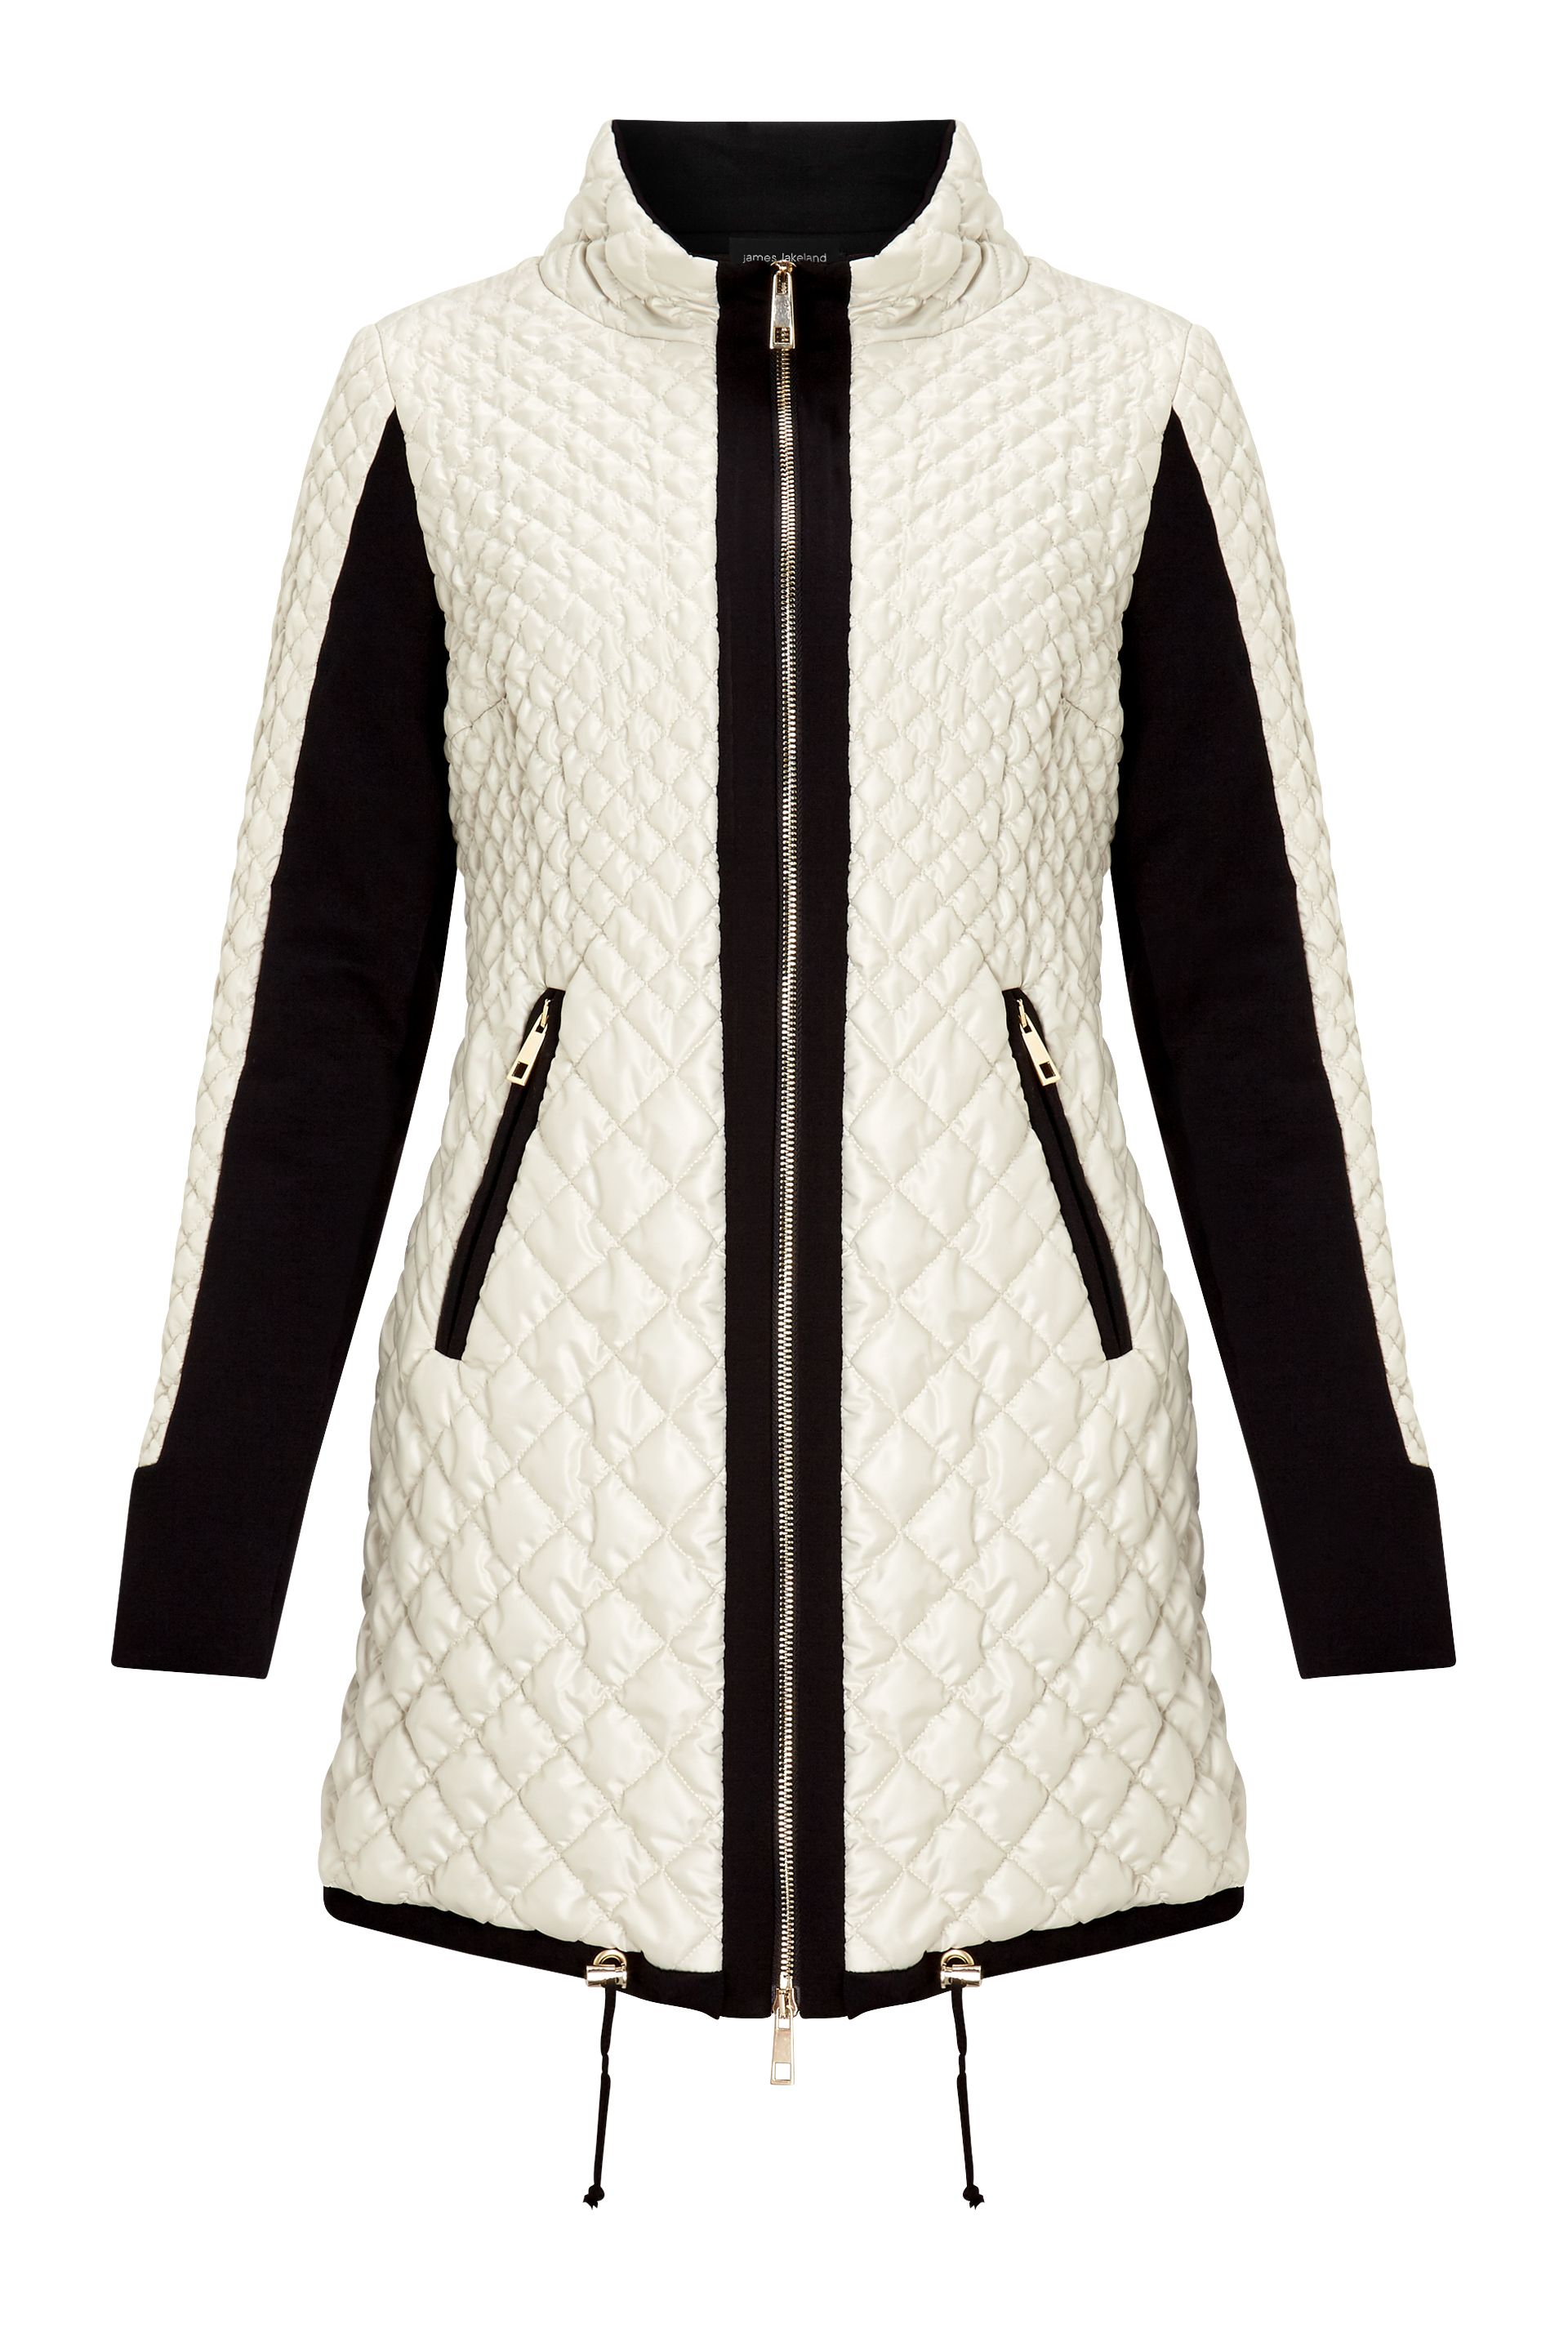 James Lakeland Quilted Puffer Jacket, Cream